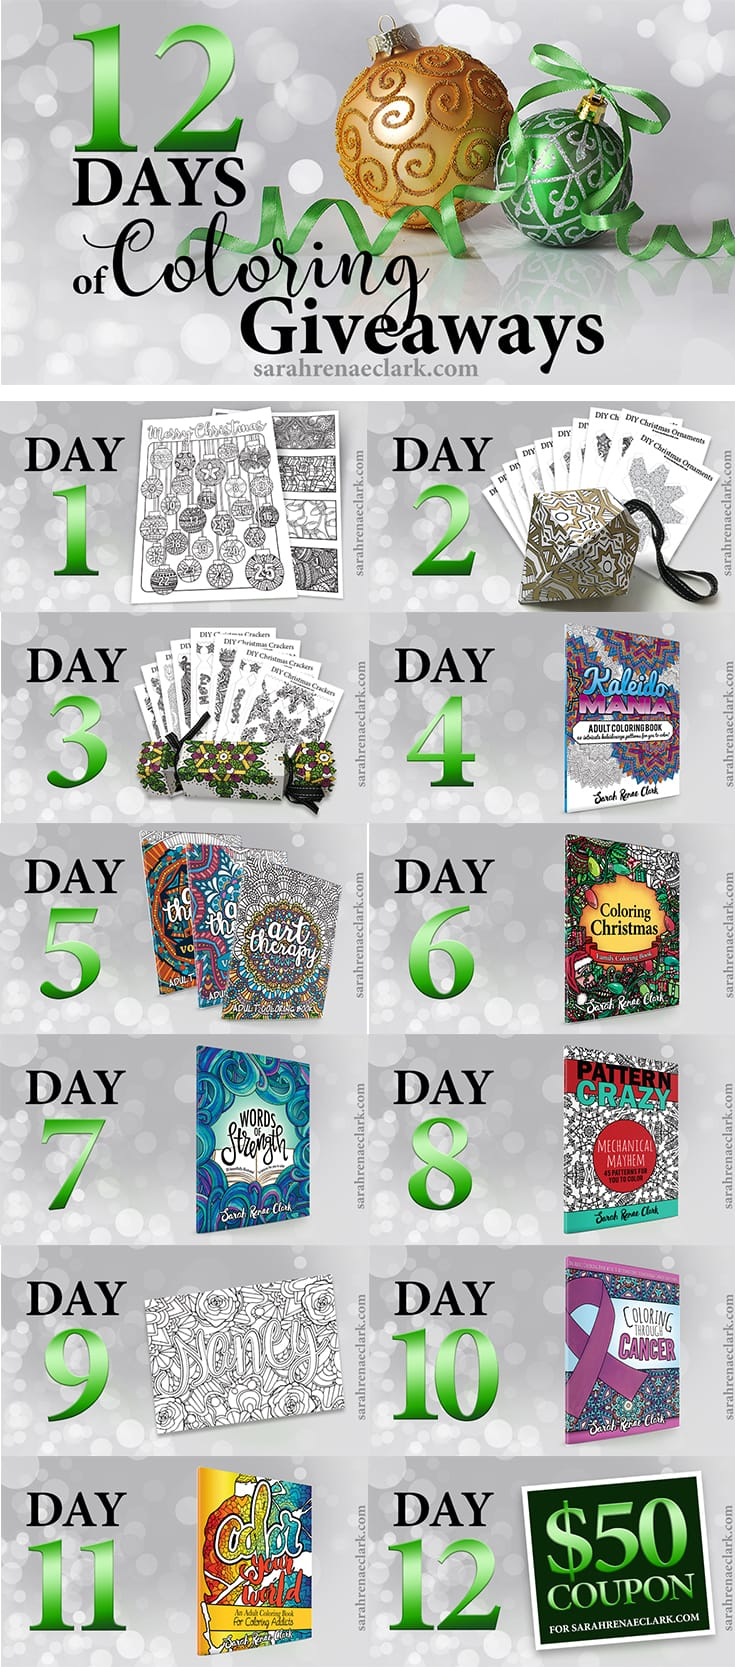 12 Days of Coloring Giveaways 2016 - Enter to win a new prize every day at sarahrenaeclark.com